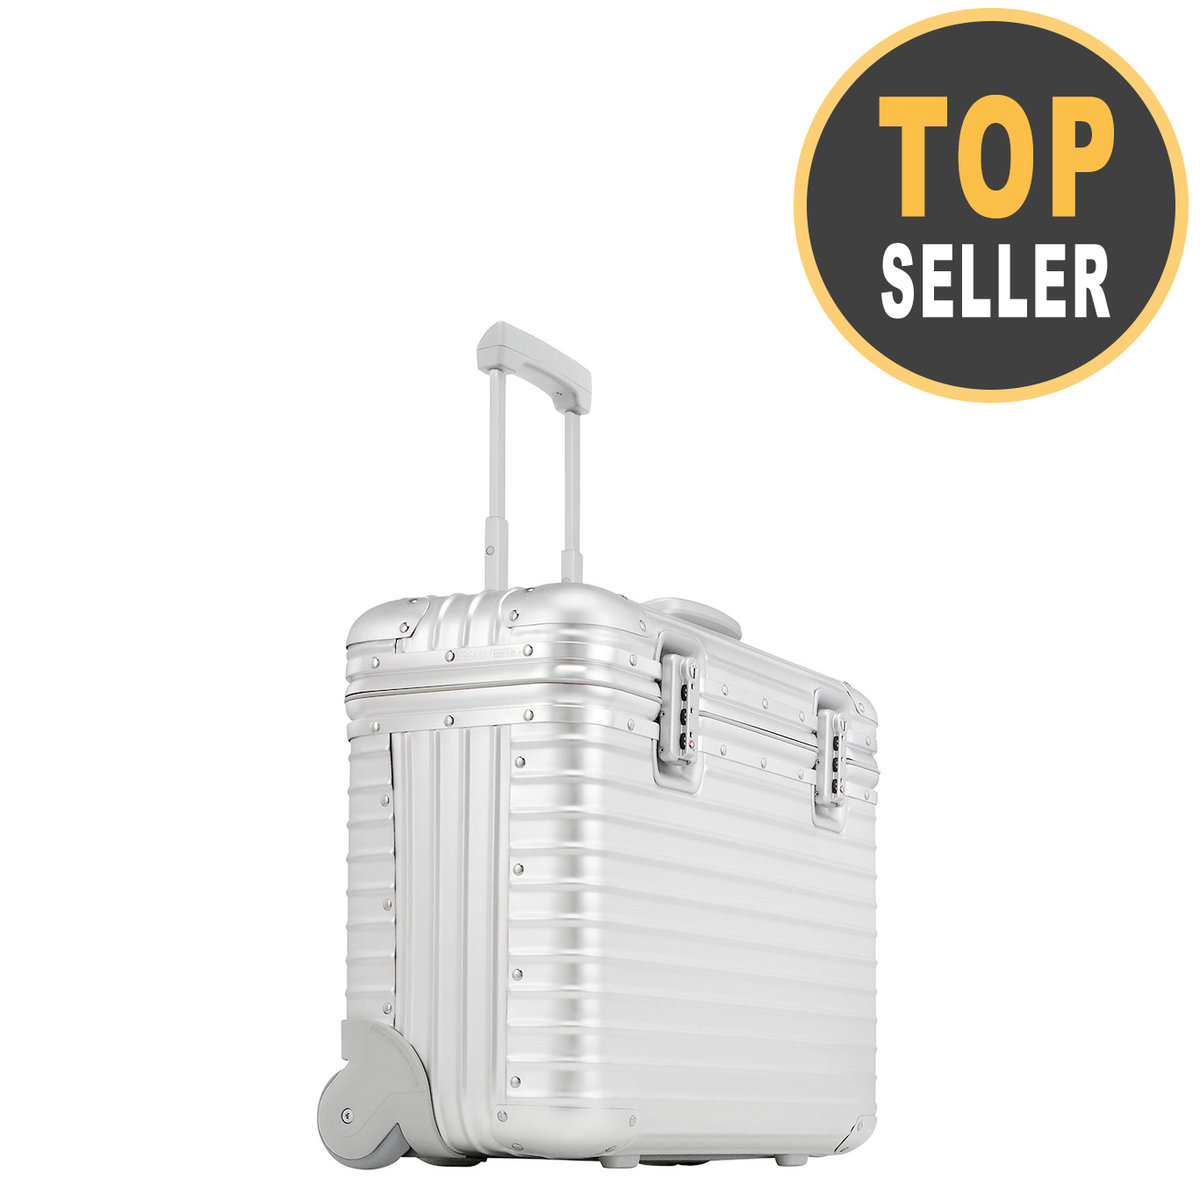 topas modesens rimowa cabin product multiwheel luggage cabins